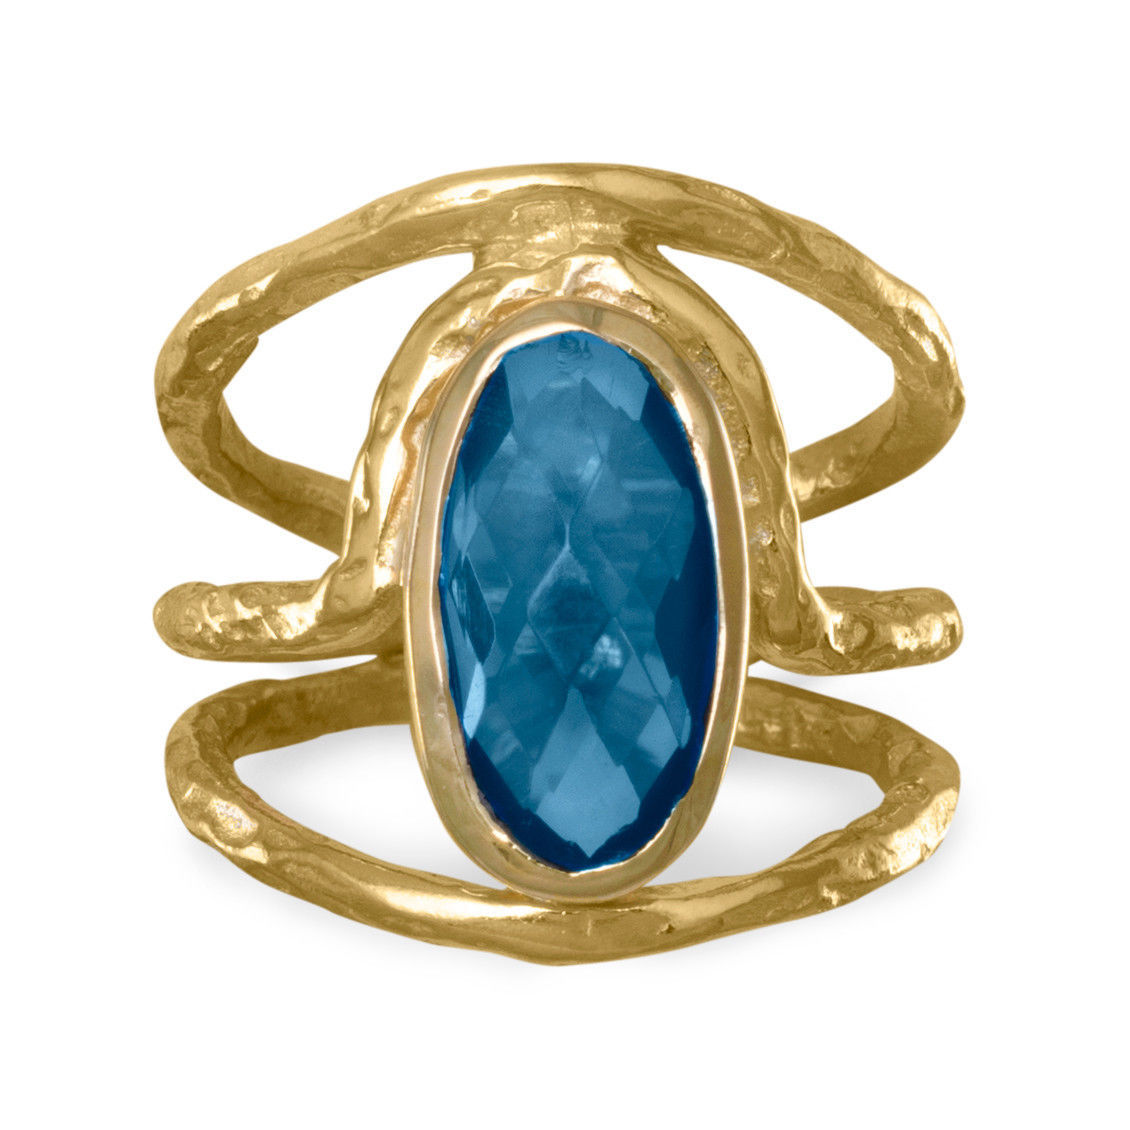 Beautiful 14 Karat Gold Plated Ring with Blue Hydro Quartz